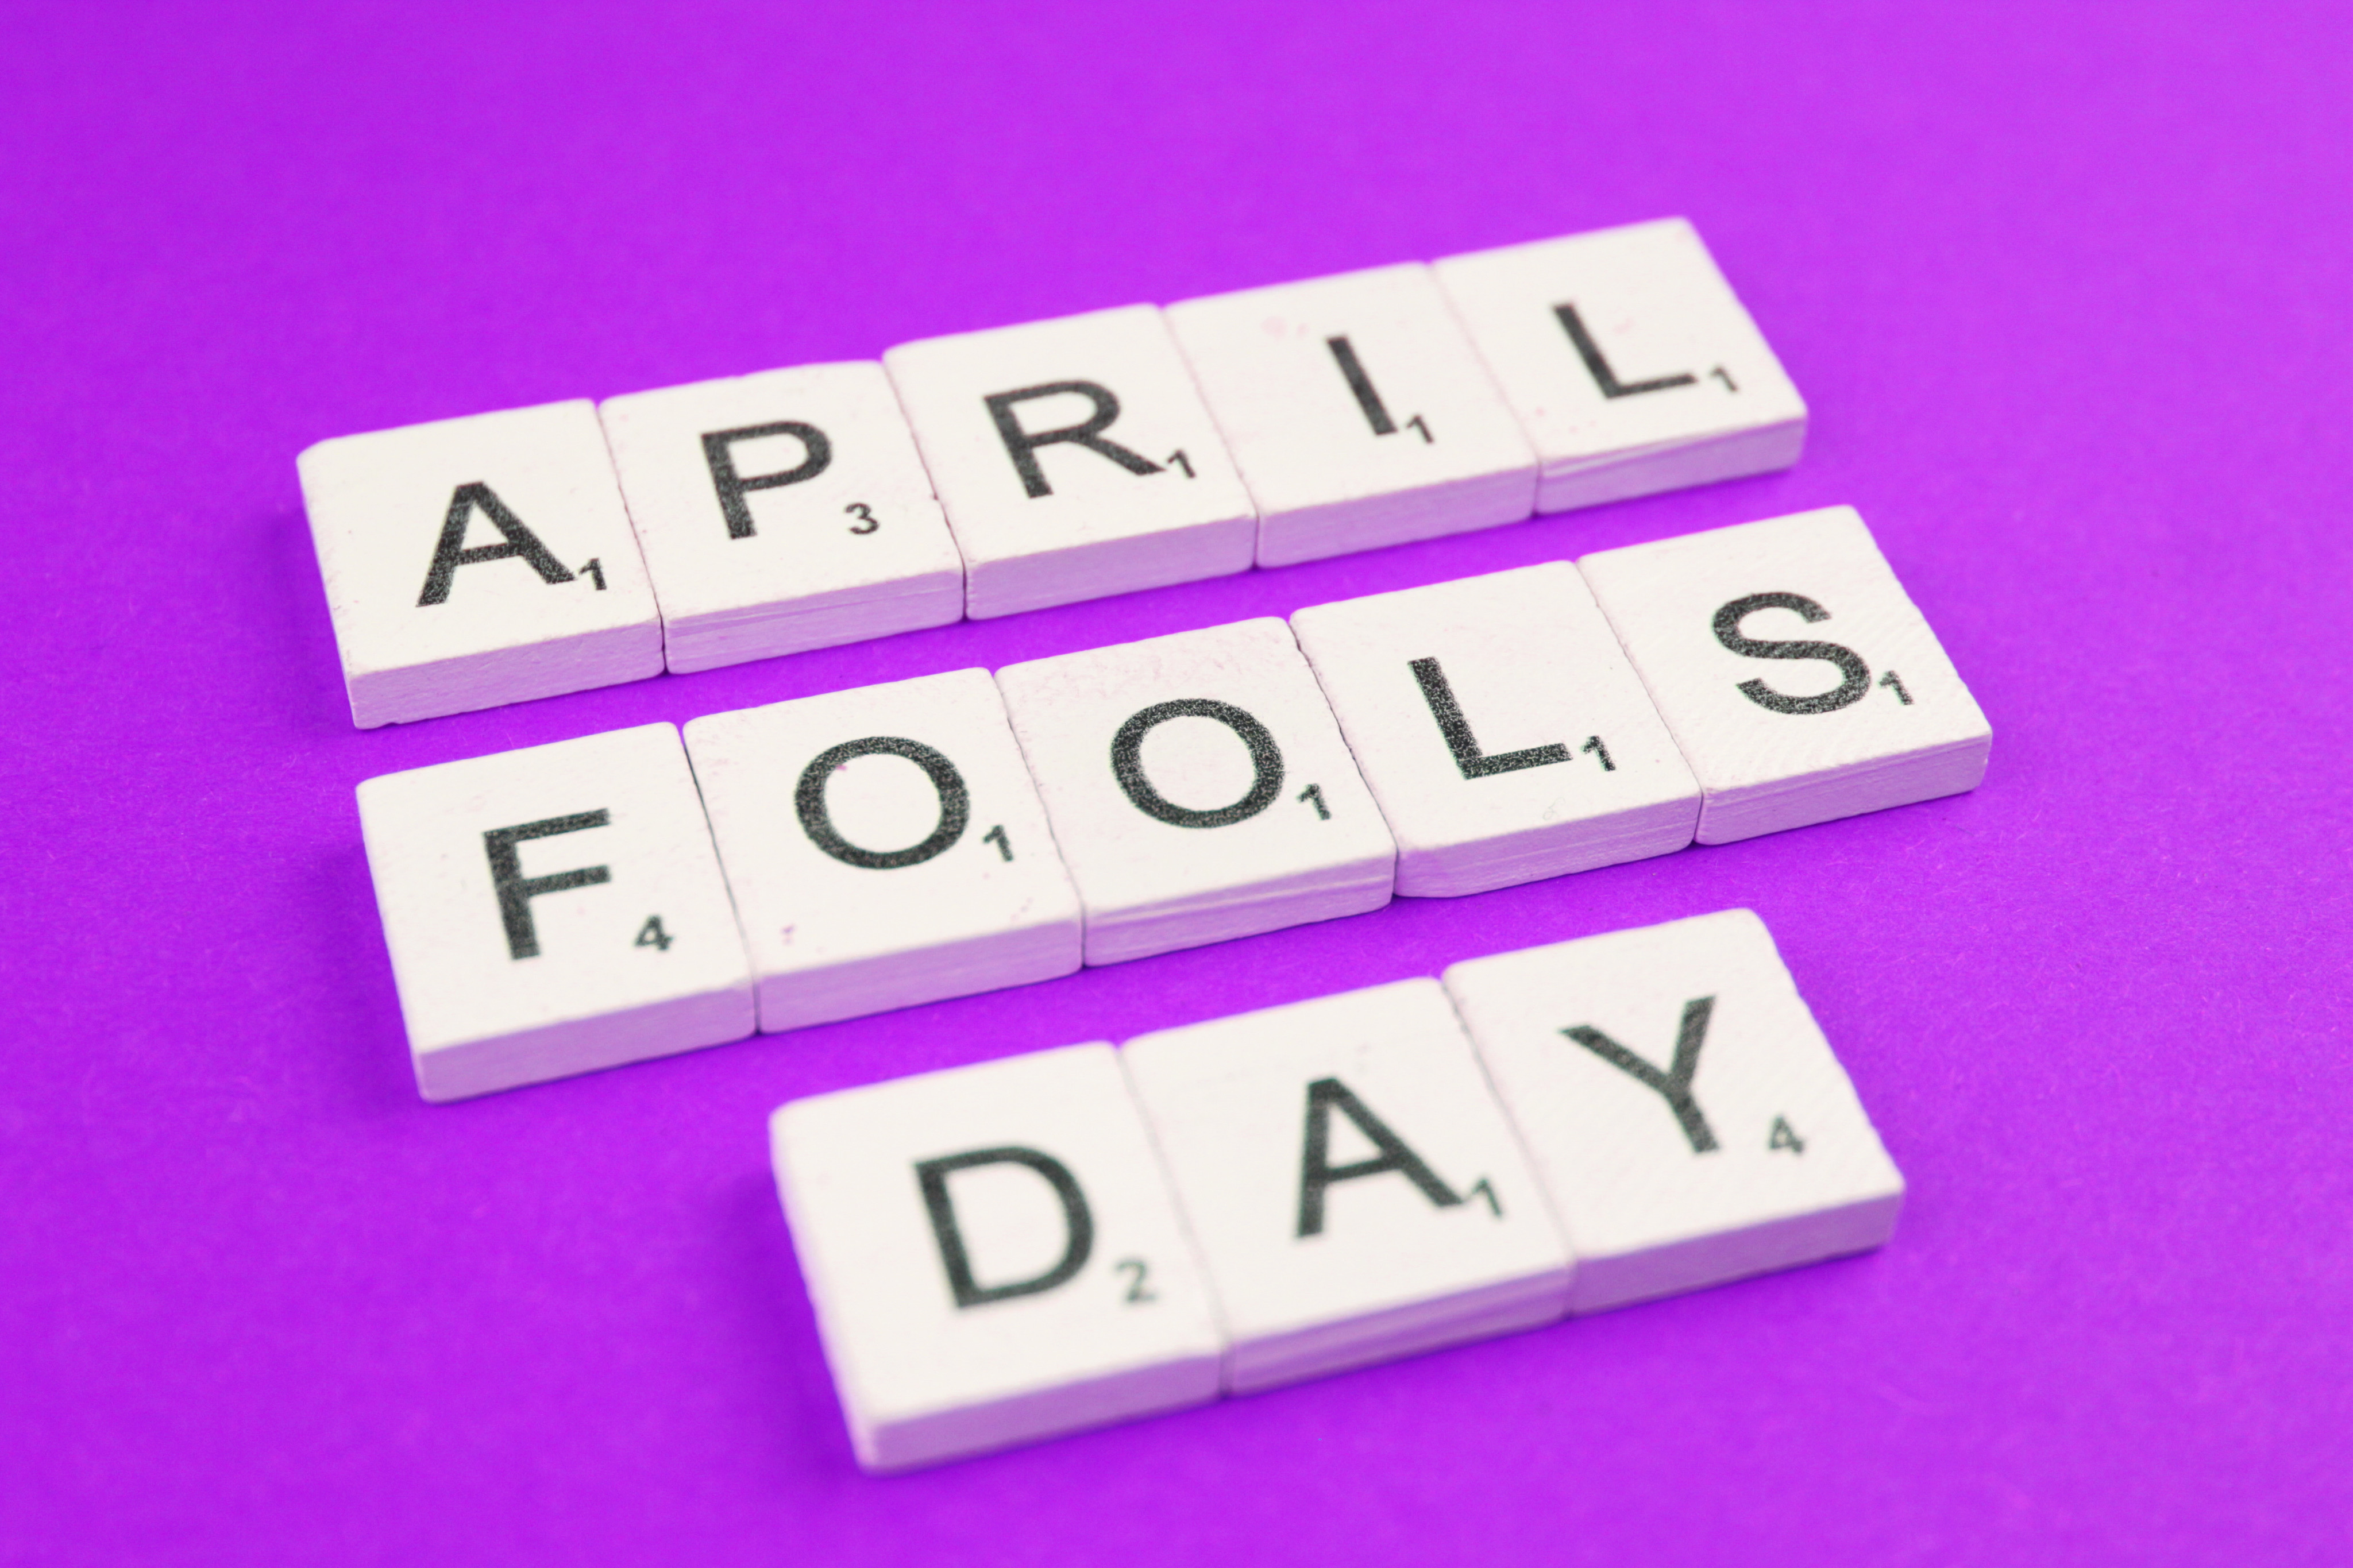 april-fools-day-scrabble-letters-word-on-a-purple--72EA563